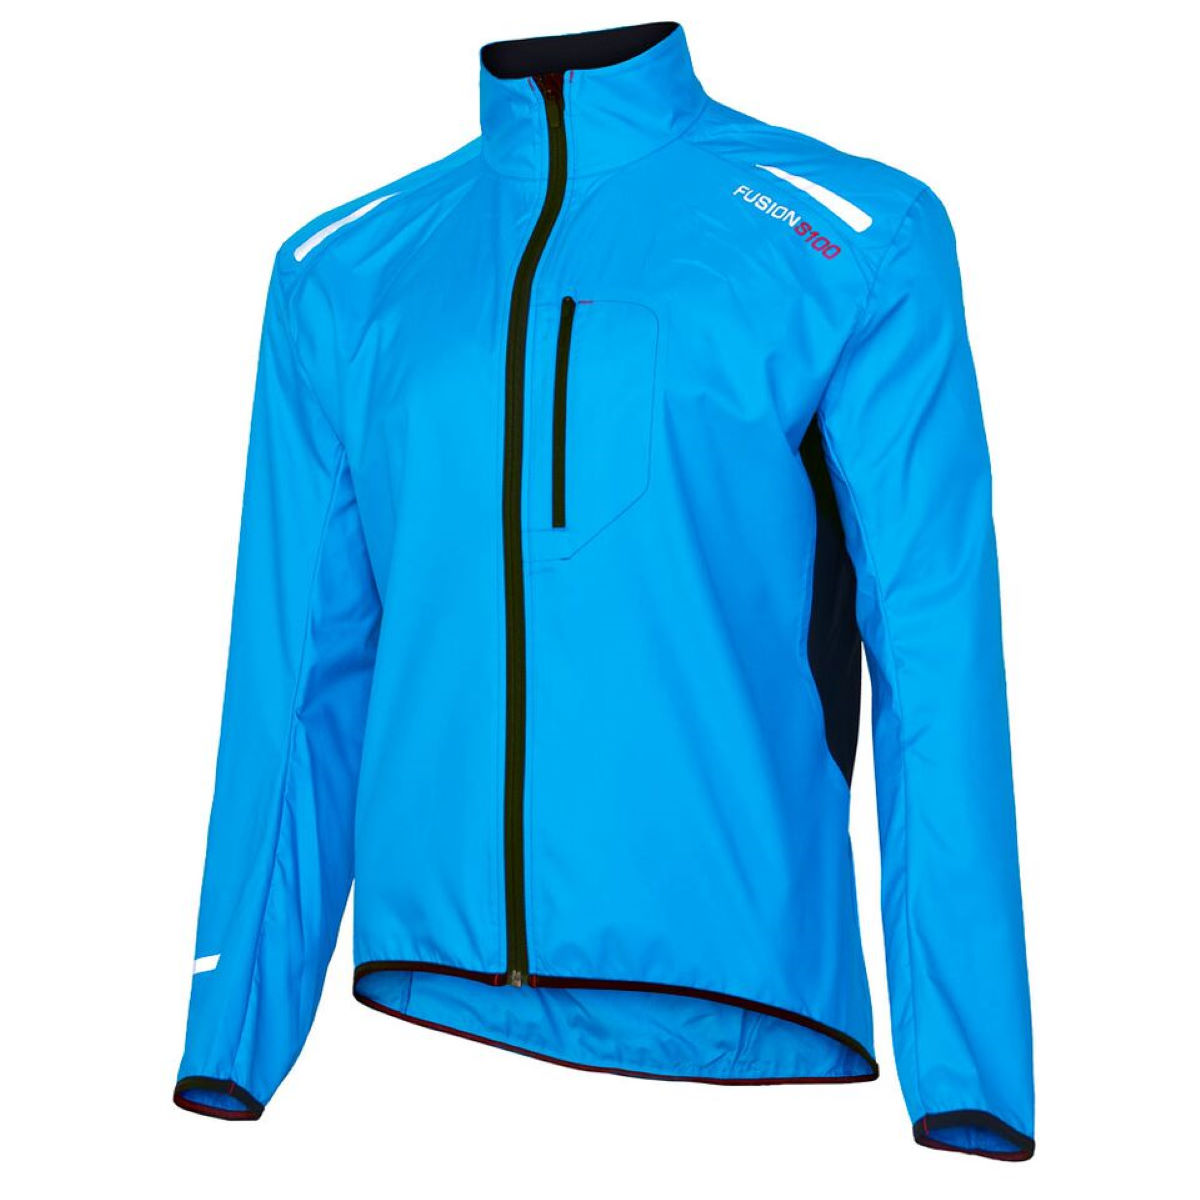 Buy Cheap Microfiber Jacket Compare Cycling Prices For